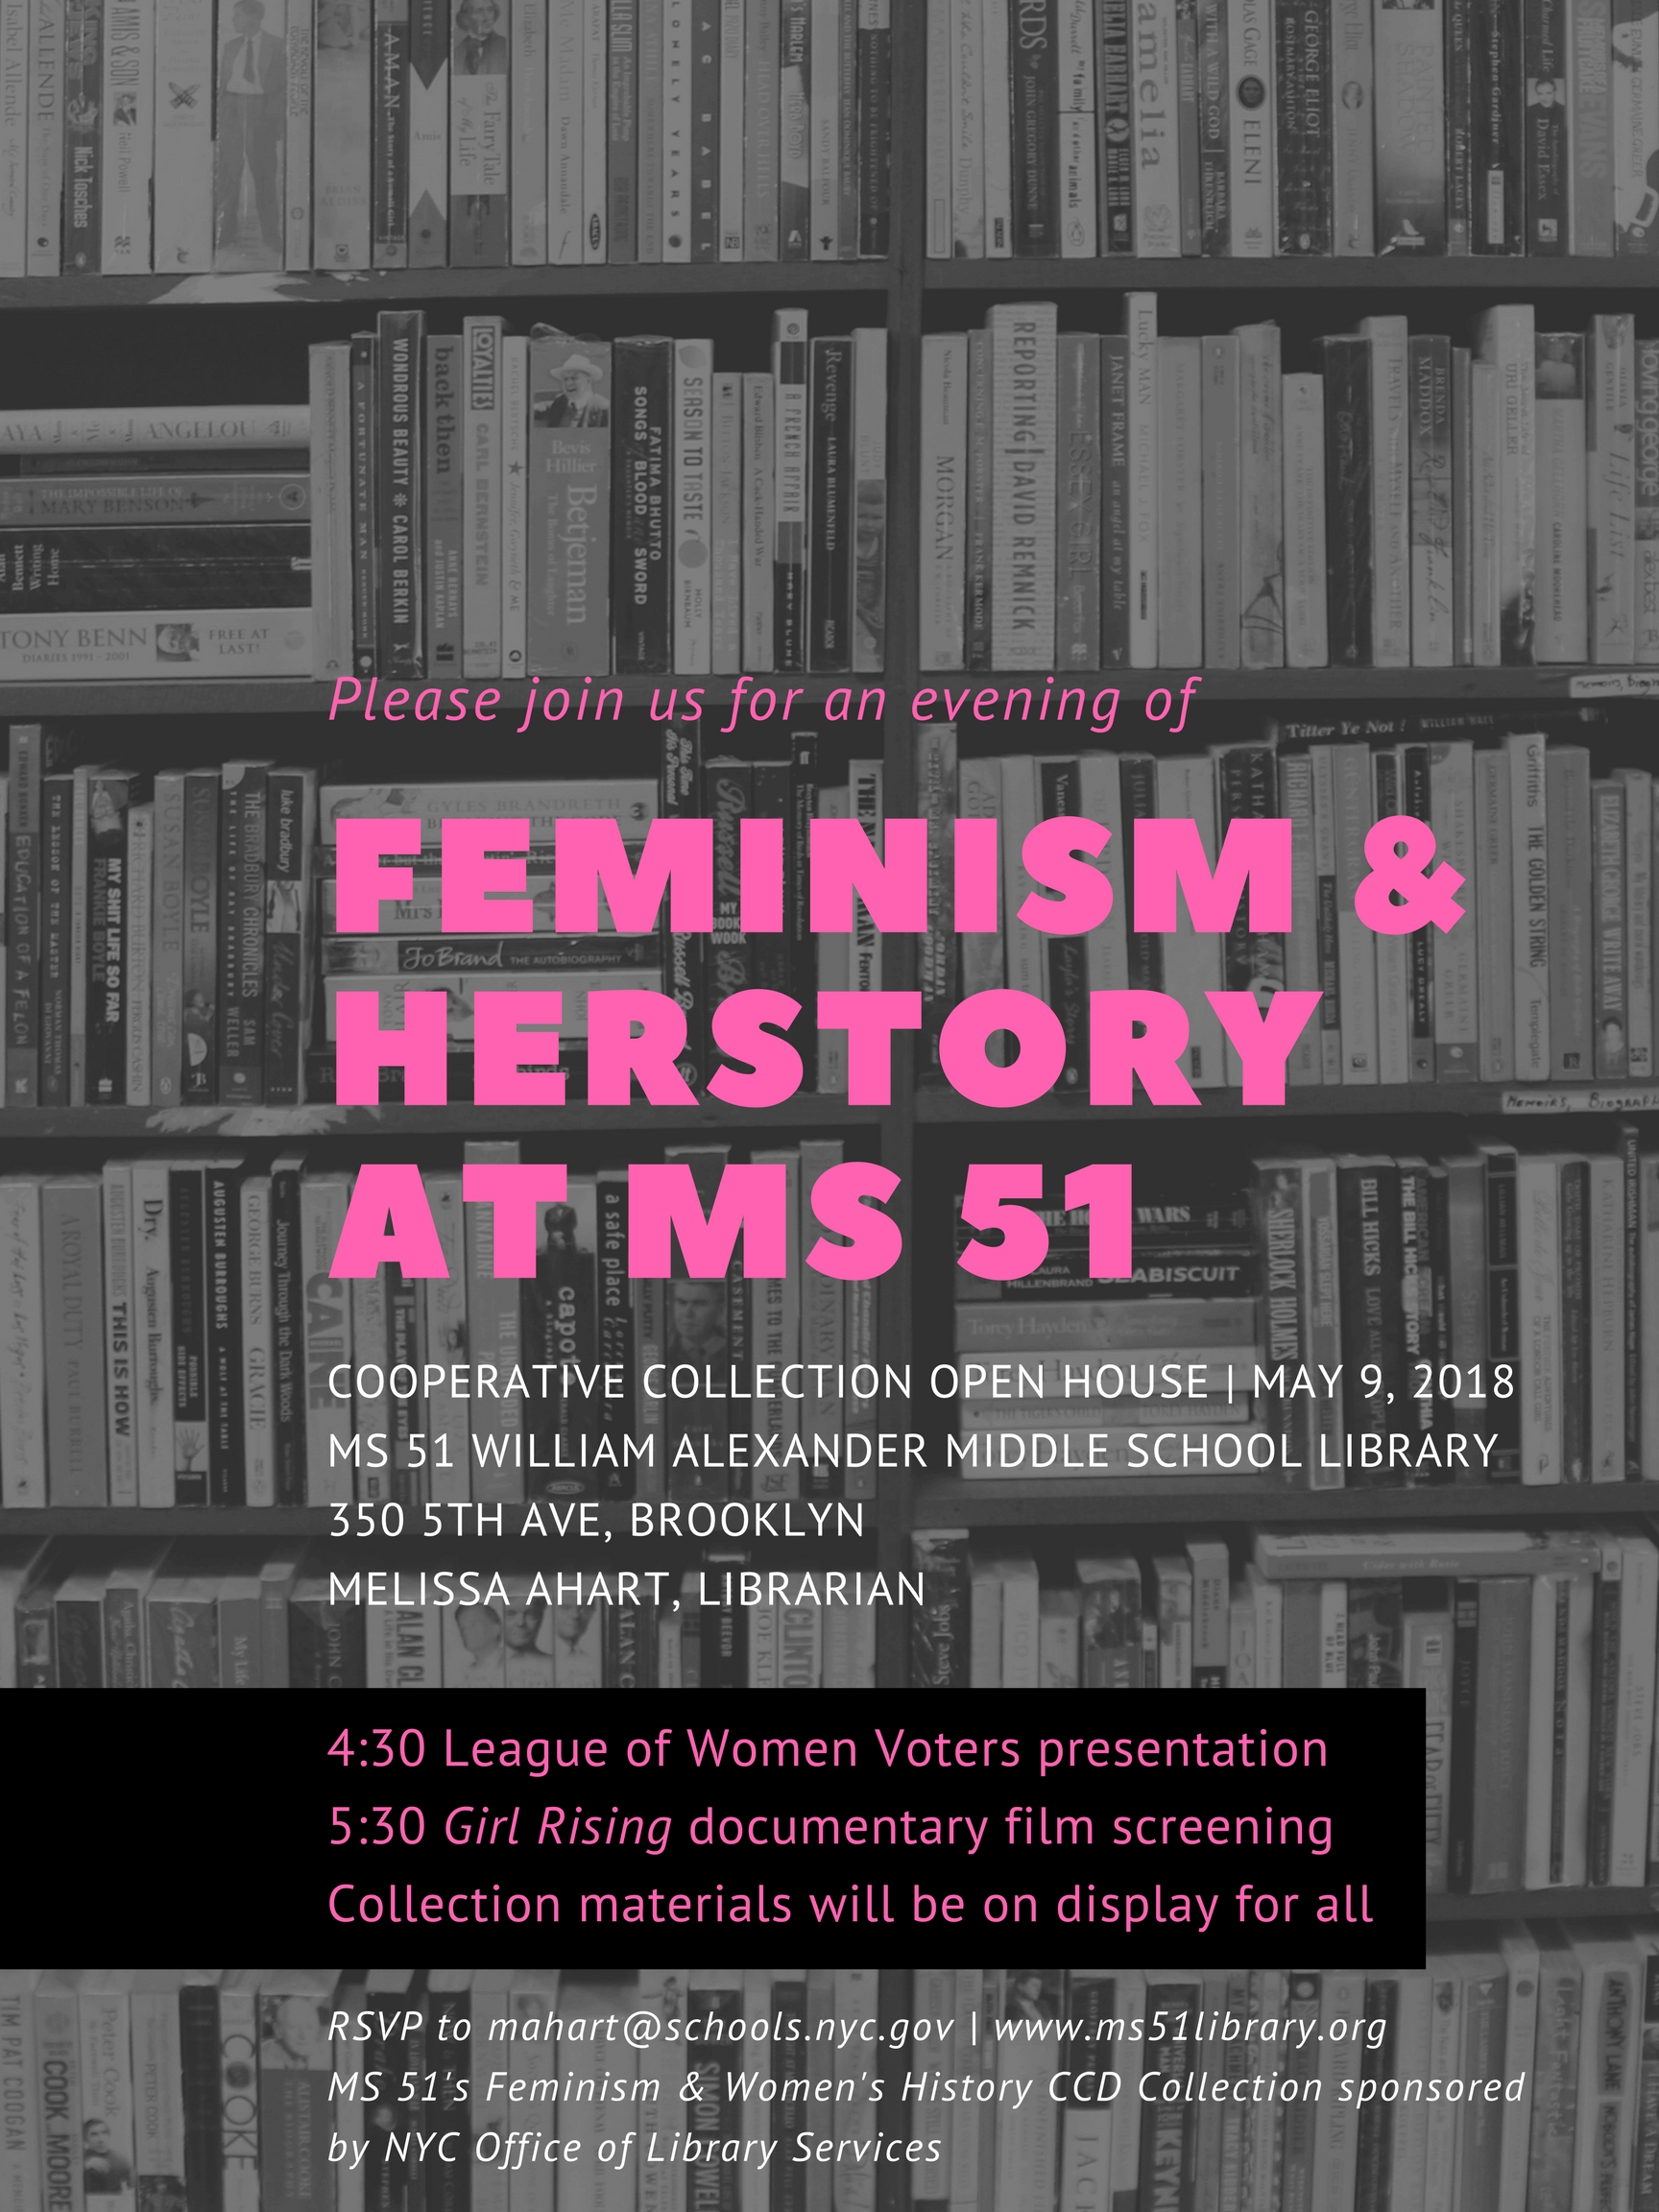 Feminism & Herstory at MS 51 open house flyer